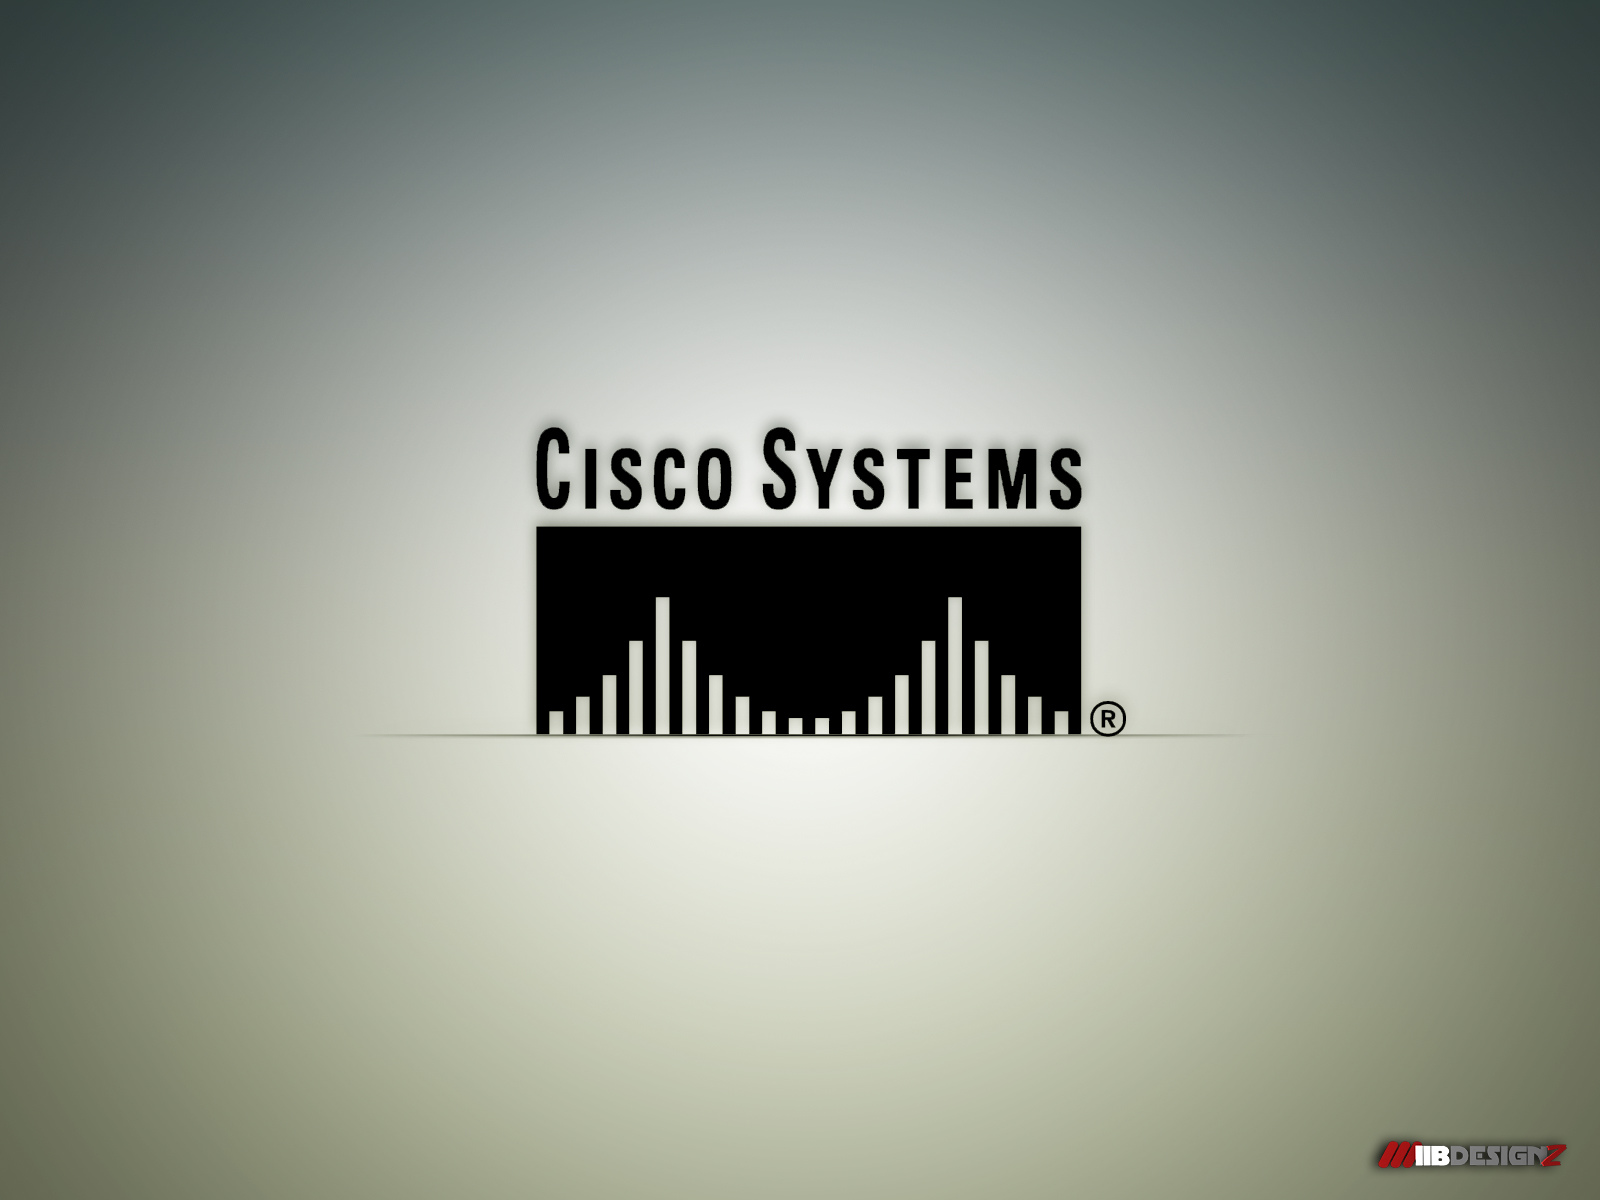 3d Wallpaper Windows 7 Animated Cisco Systems Wallpapers Cisco Systems Stock Photos